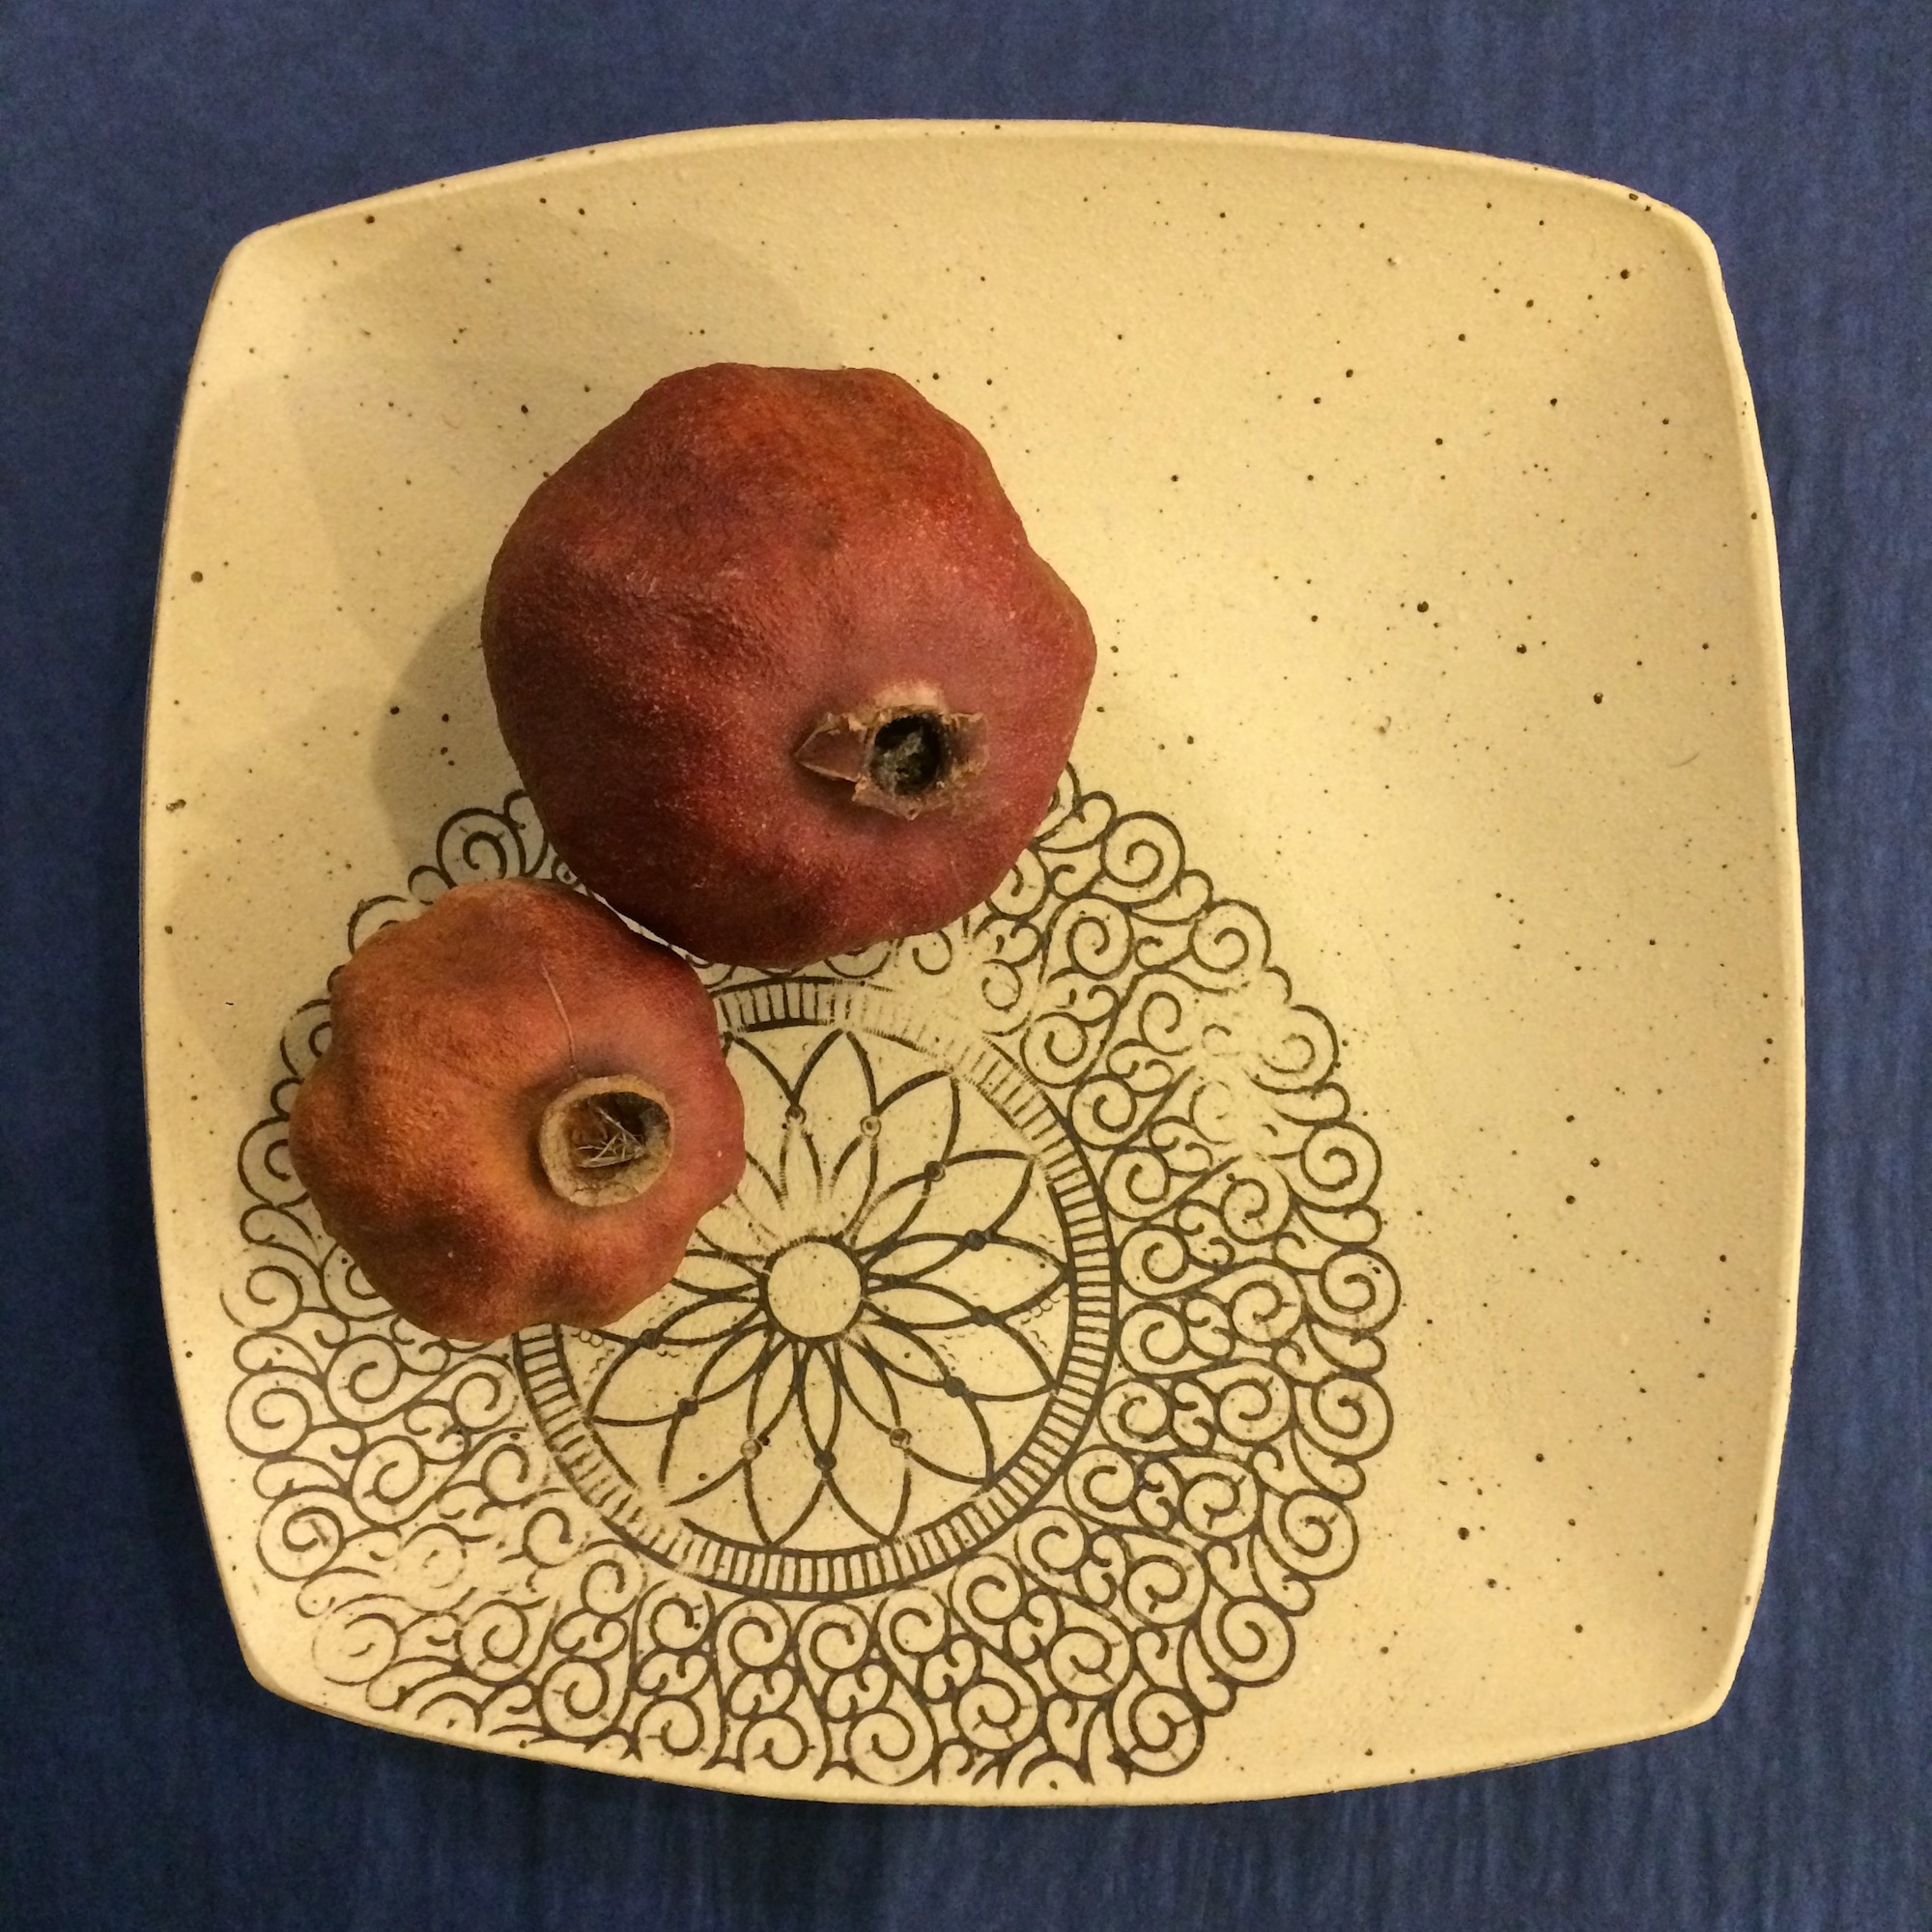 Square Stoneware Platter by Fiona Veacock - Sale!